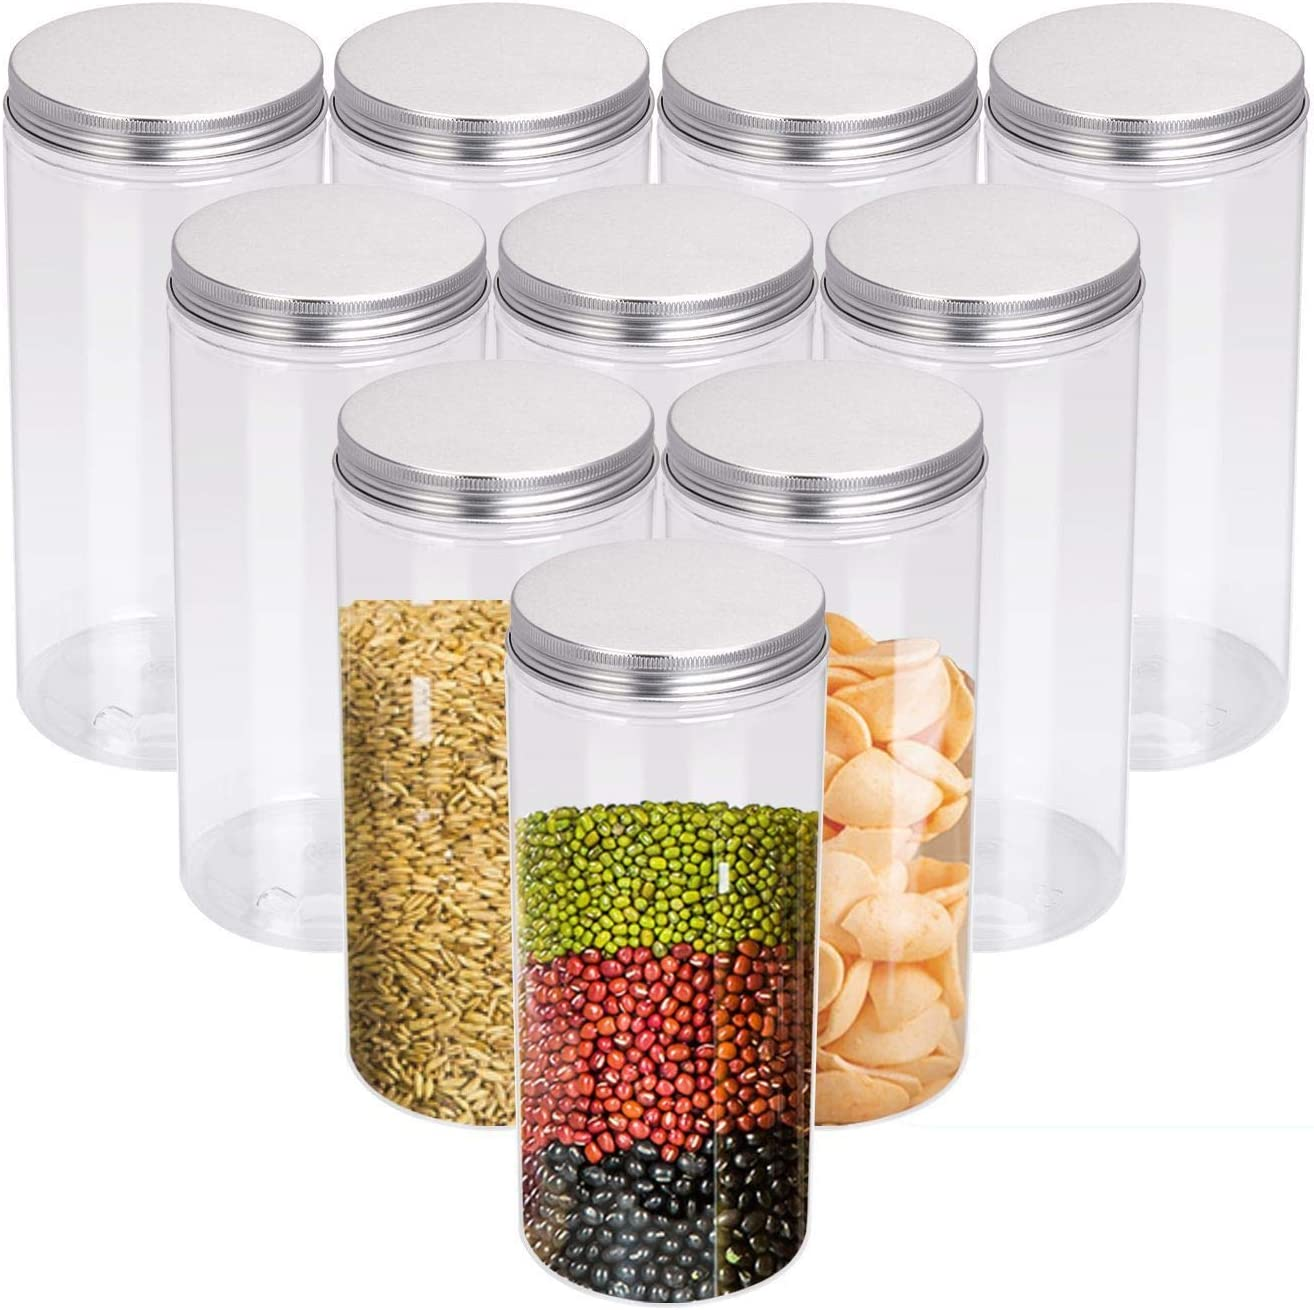 35 Oz Clear Plastic Jars with Lids - Round Food Storage Containers Set of 10 for Dry Goods, Cereals, Spices and More